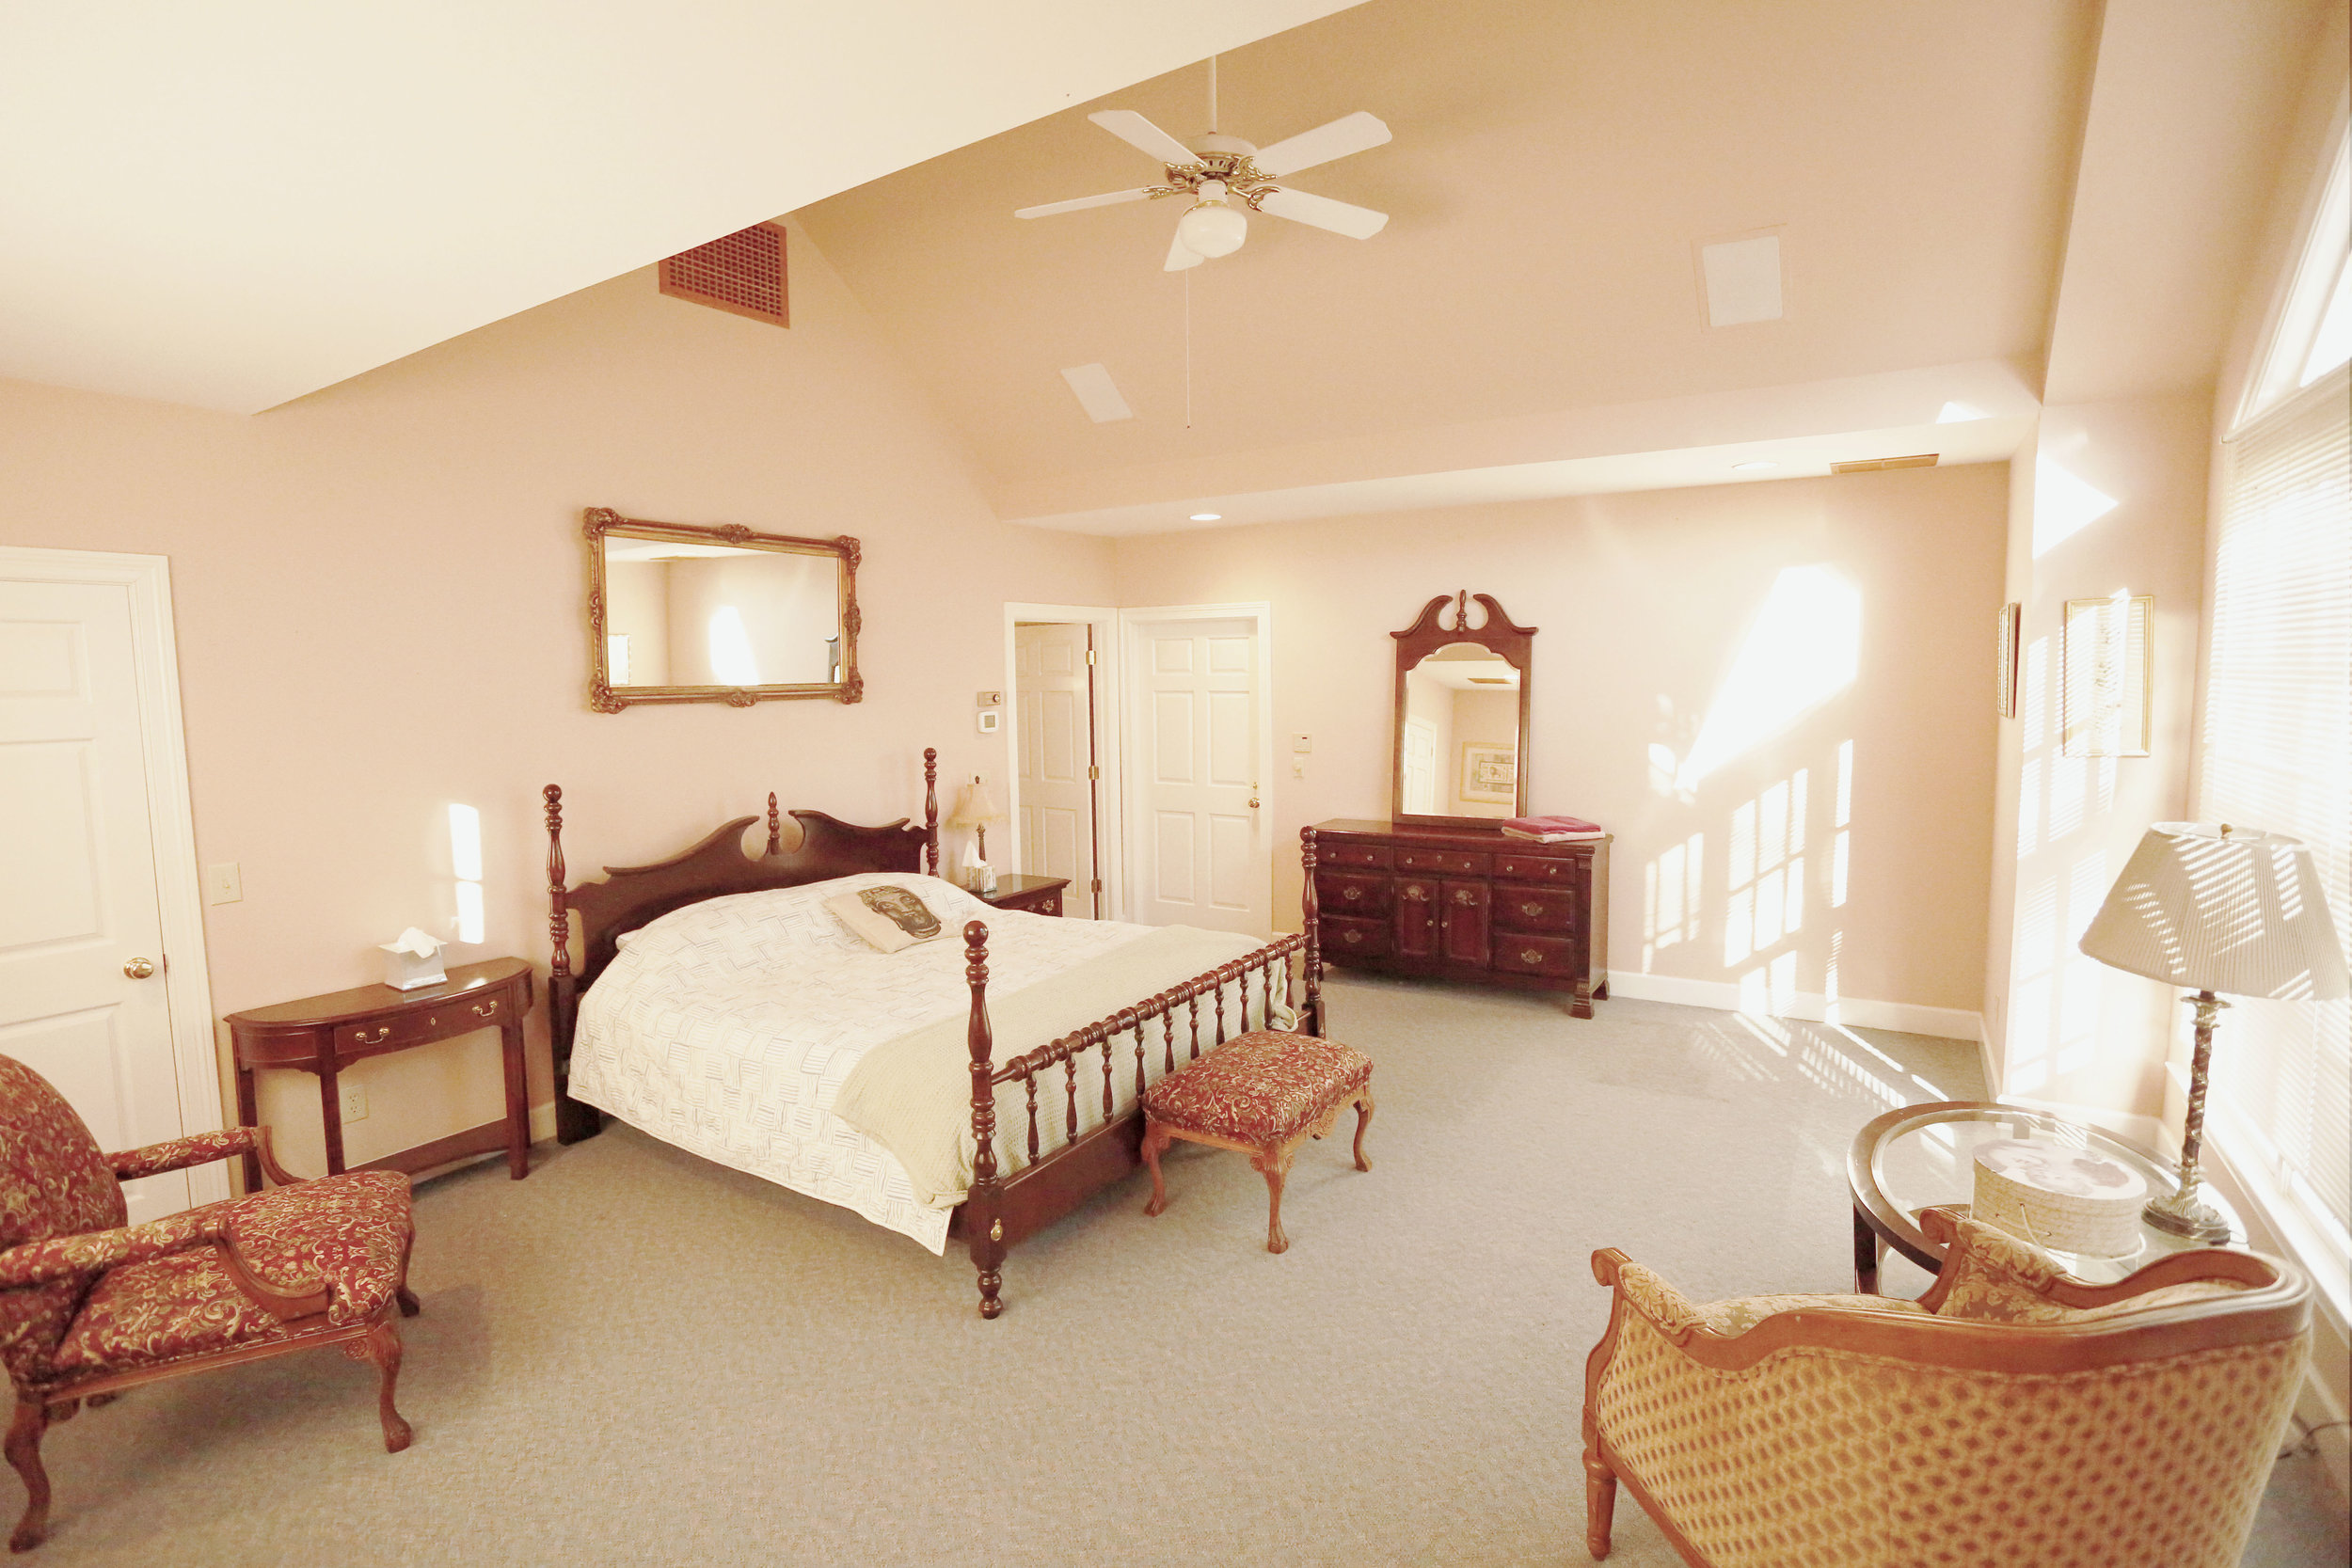 The Mansion GardenView Room shares a full bathroom with the Balcony Room. Additional full and a single beds may be added.